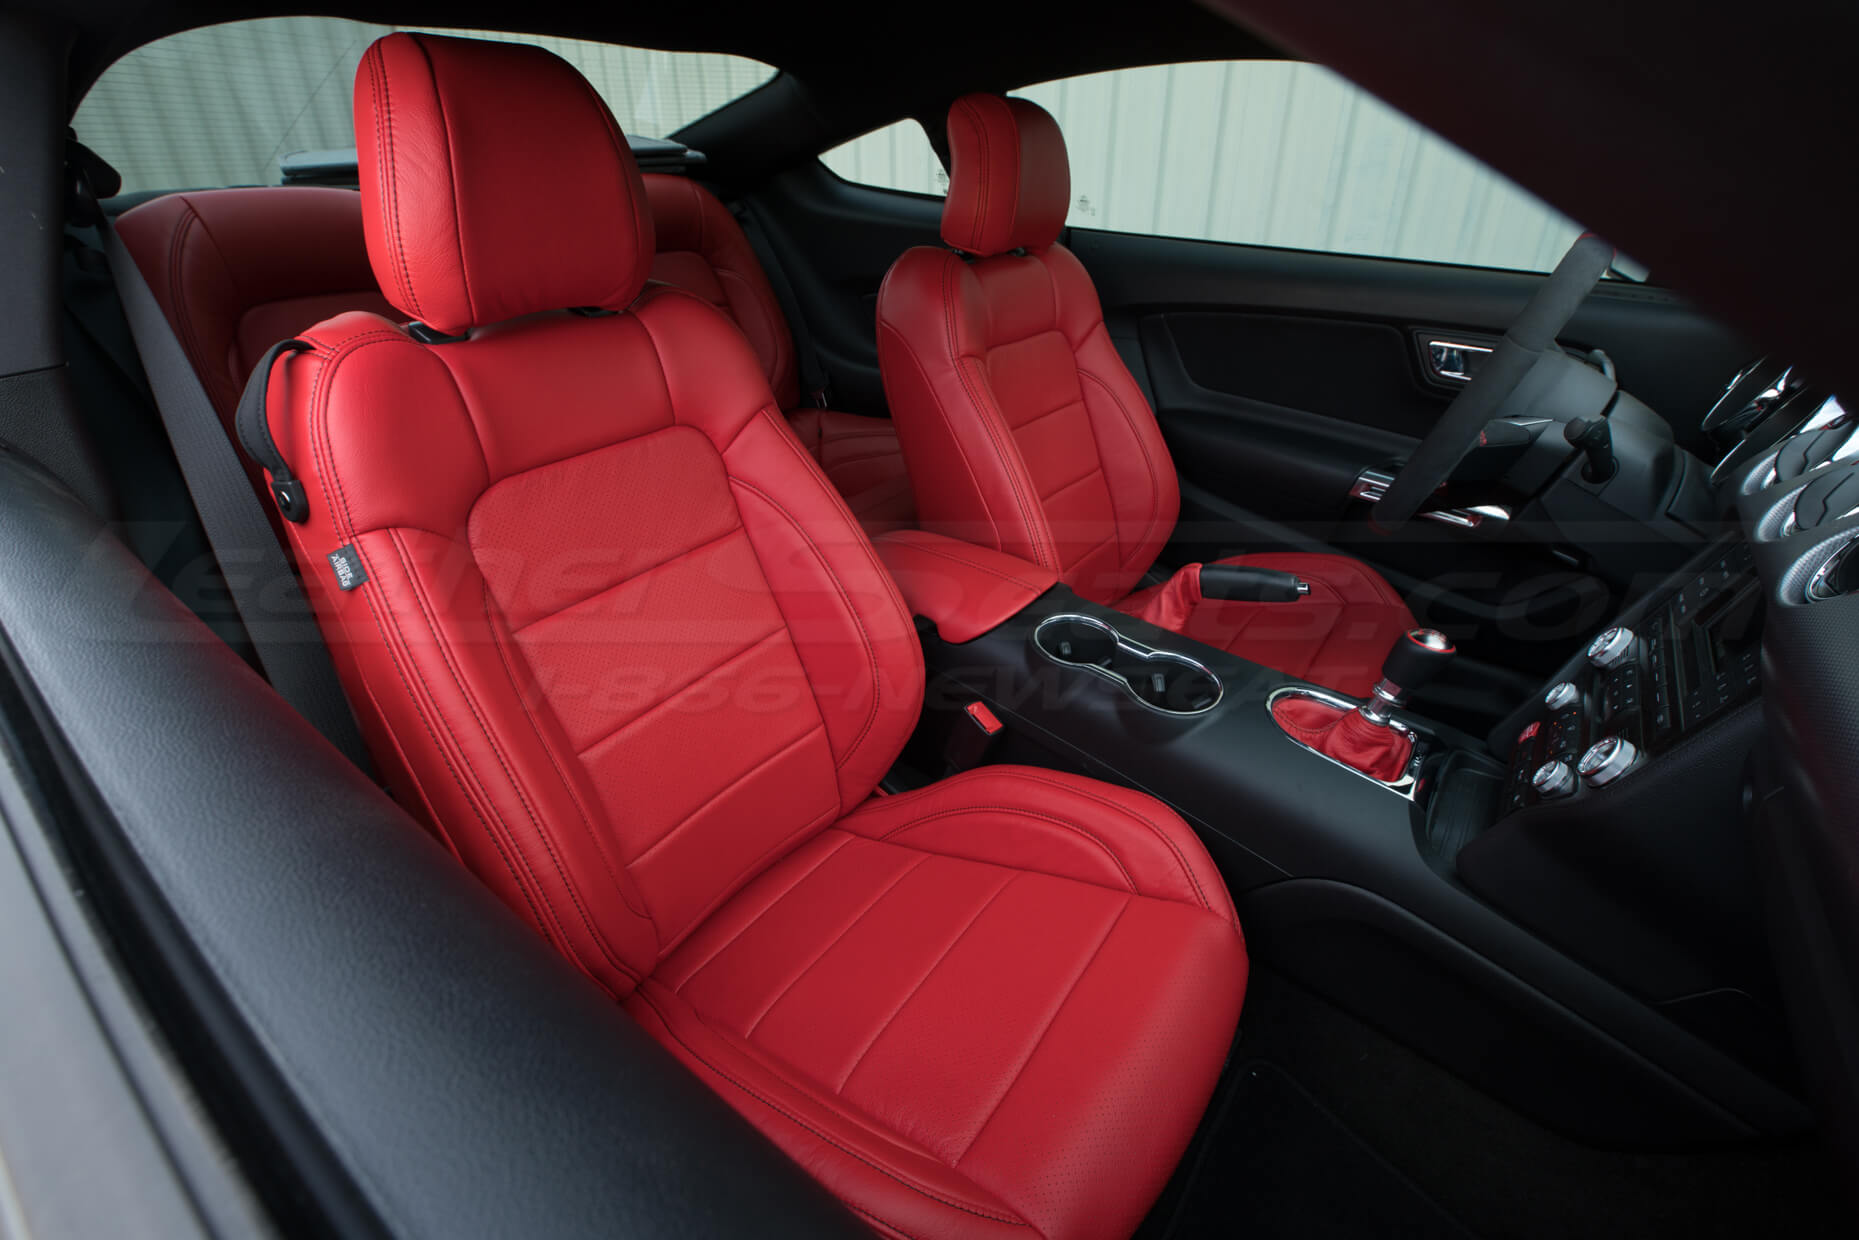 Ford Mustang Bright Red Upholstery Kit - Front interior